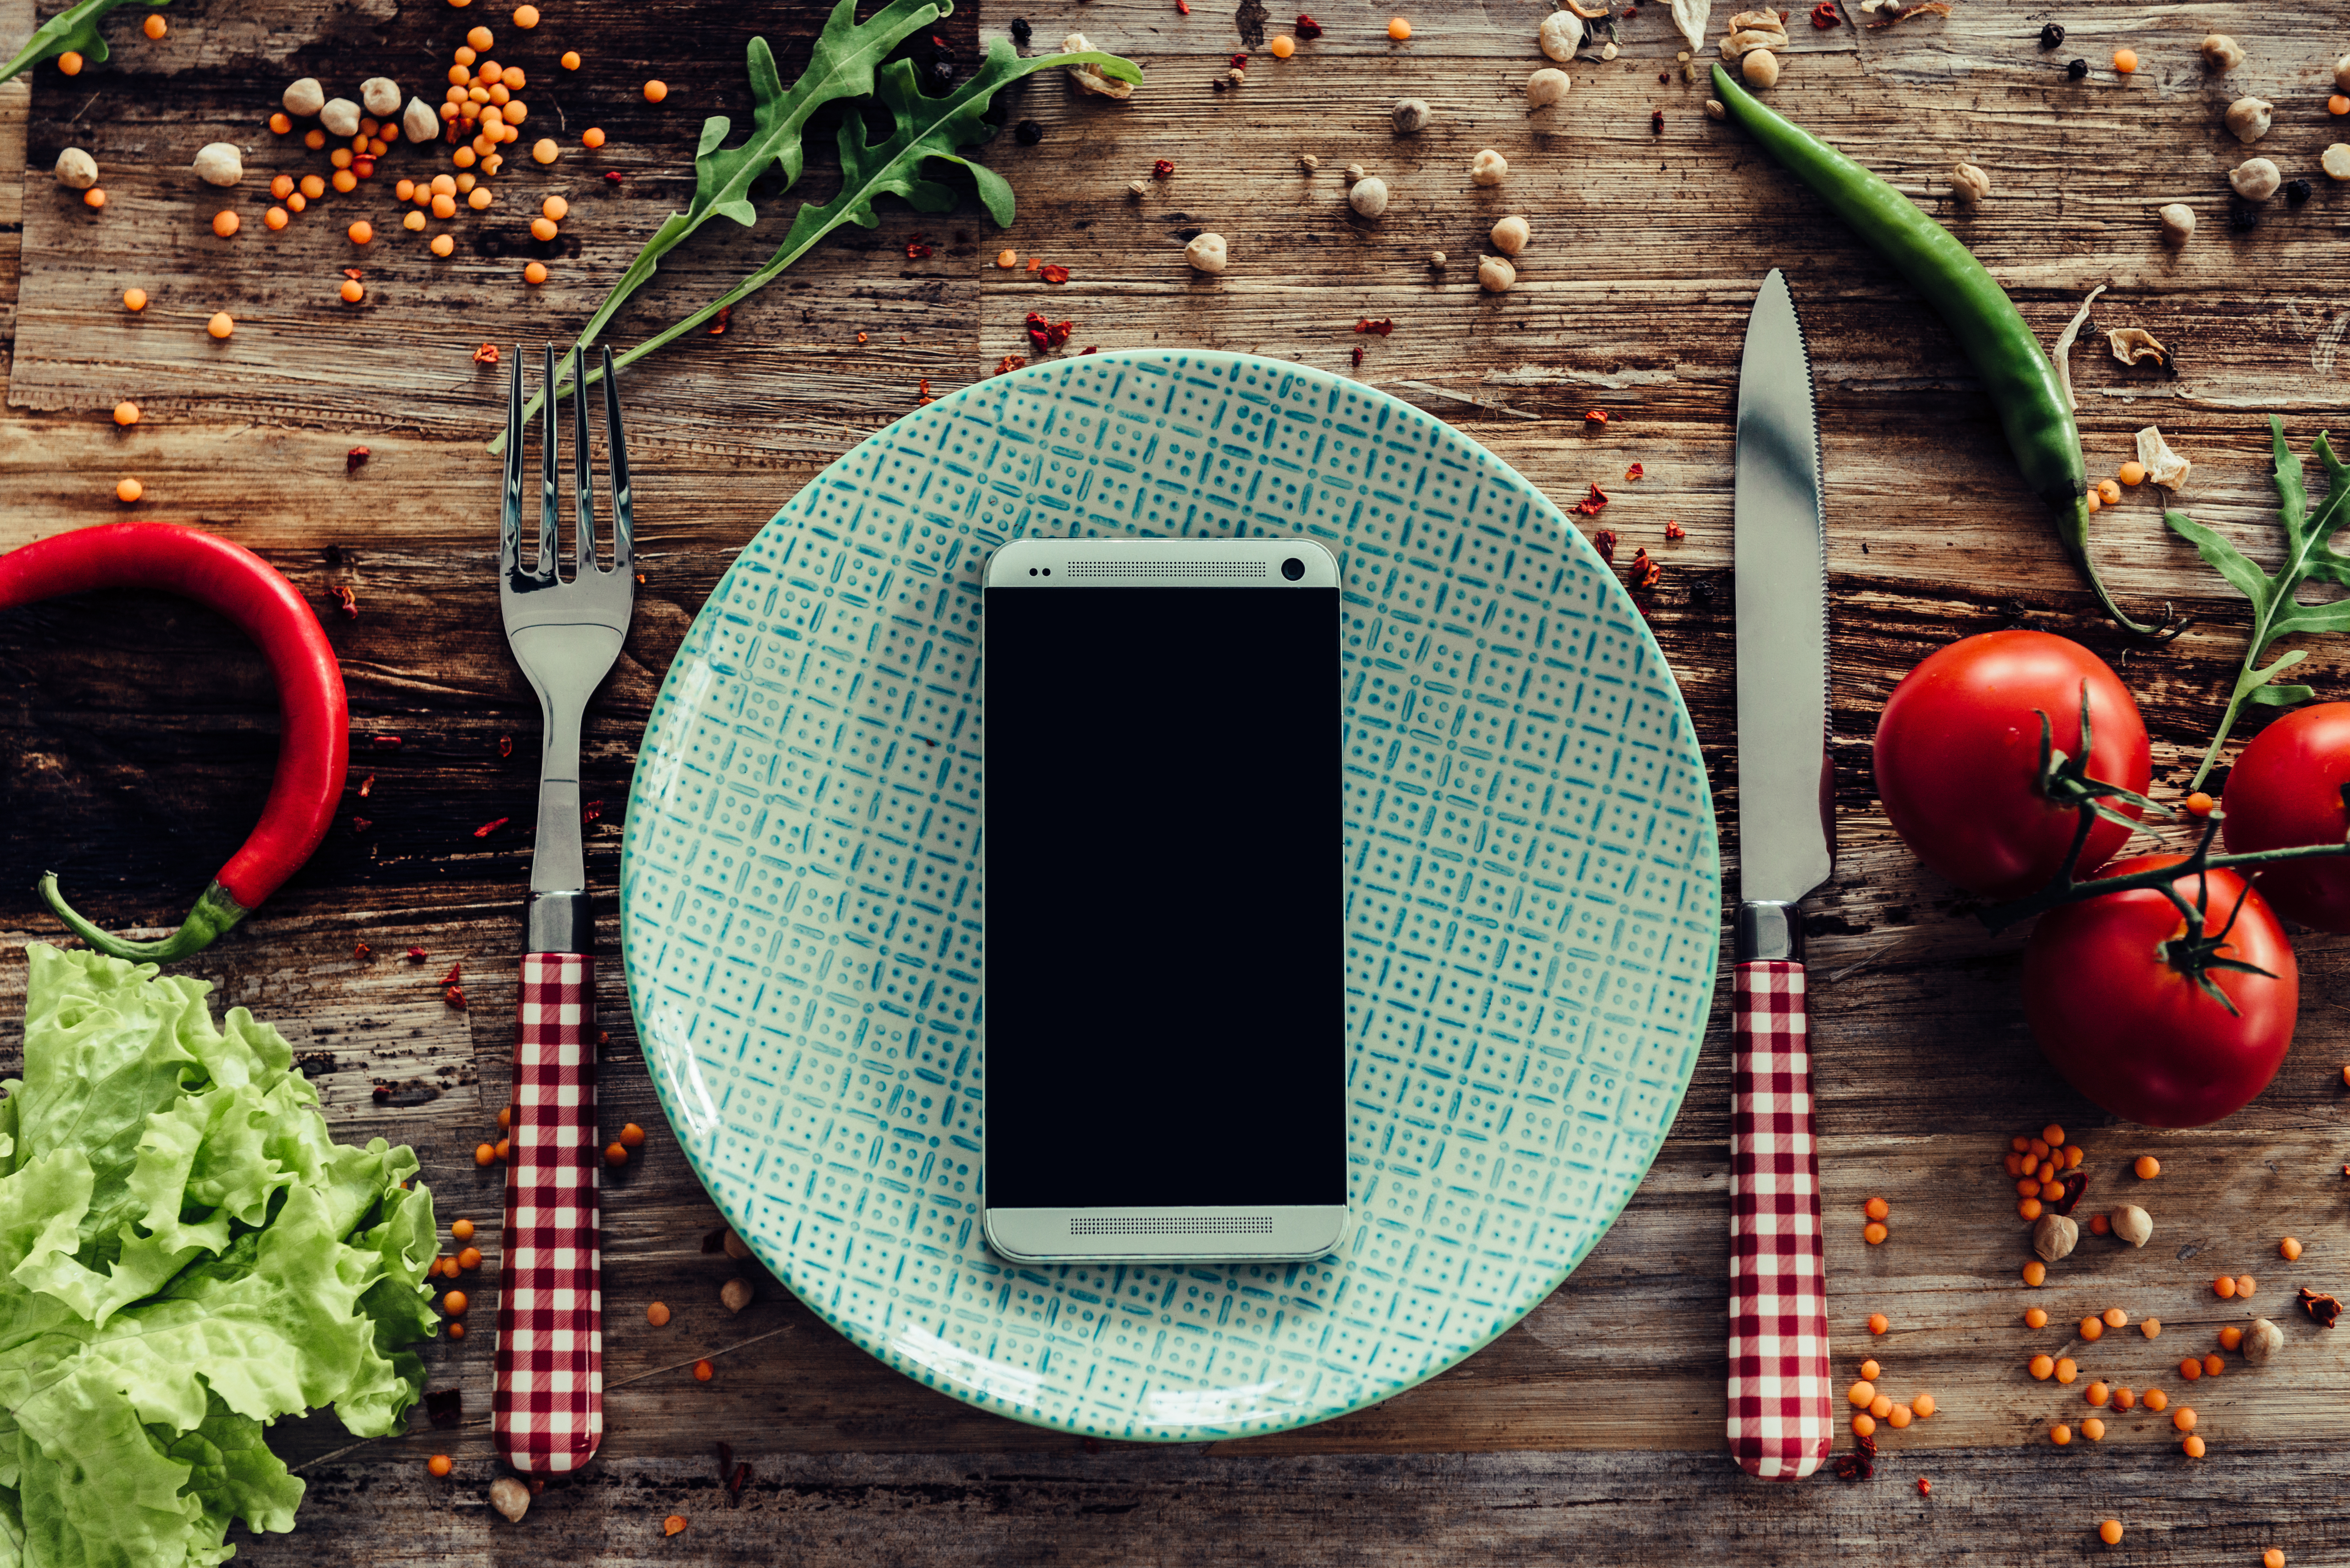 A cell phone on a white plate with a knife and fork on either side.